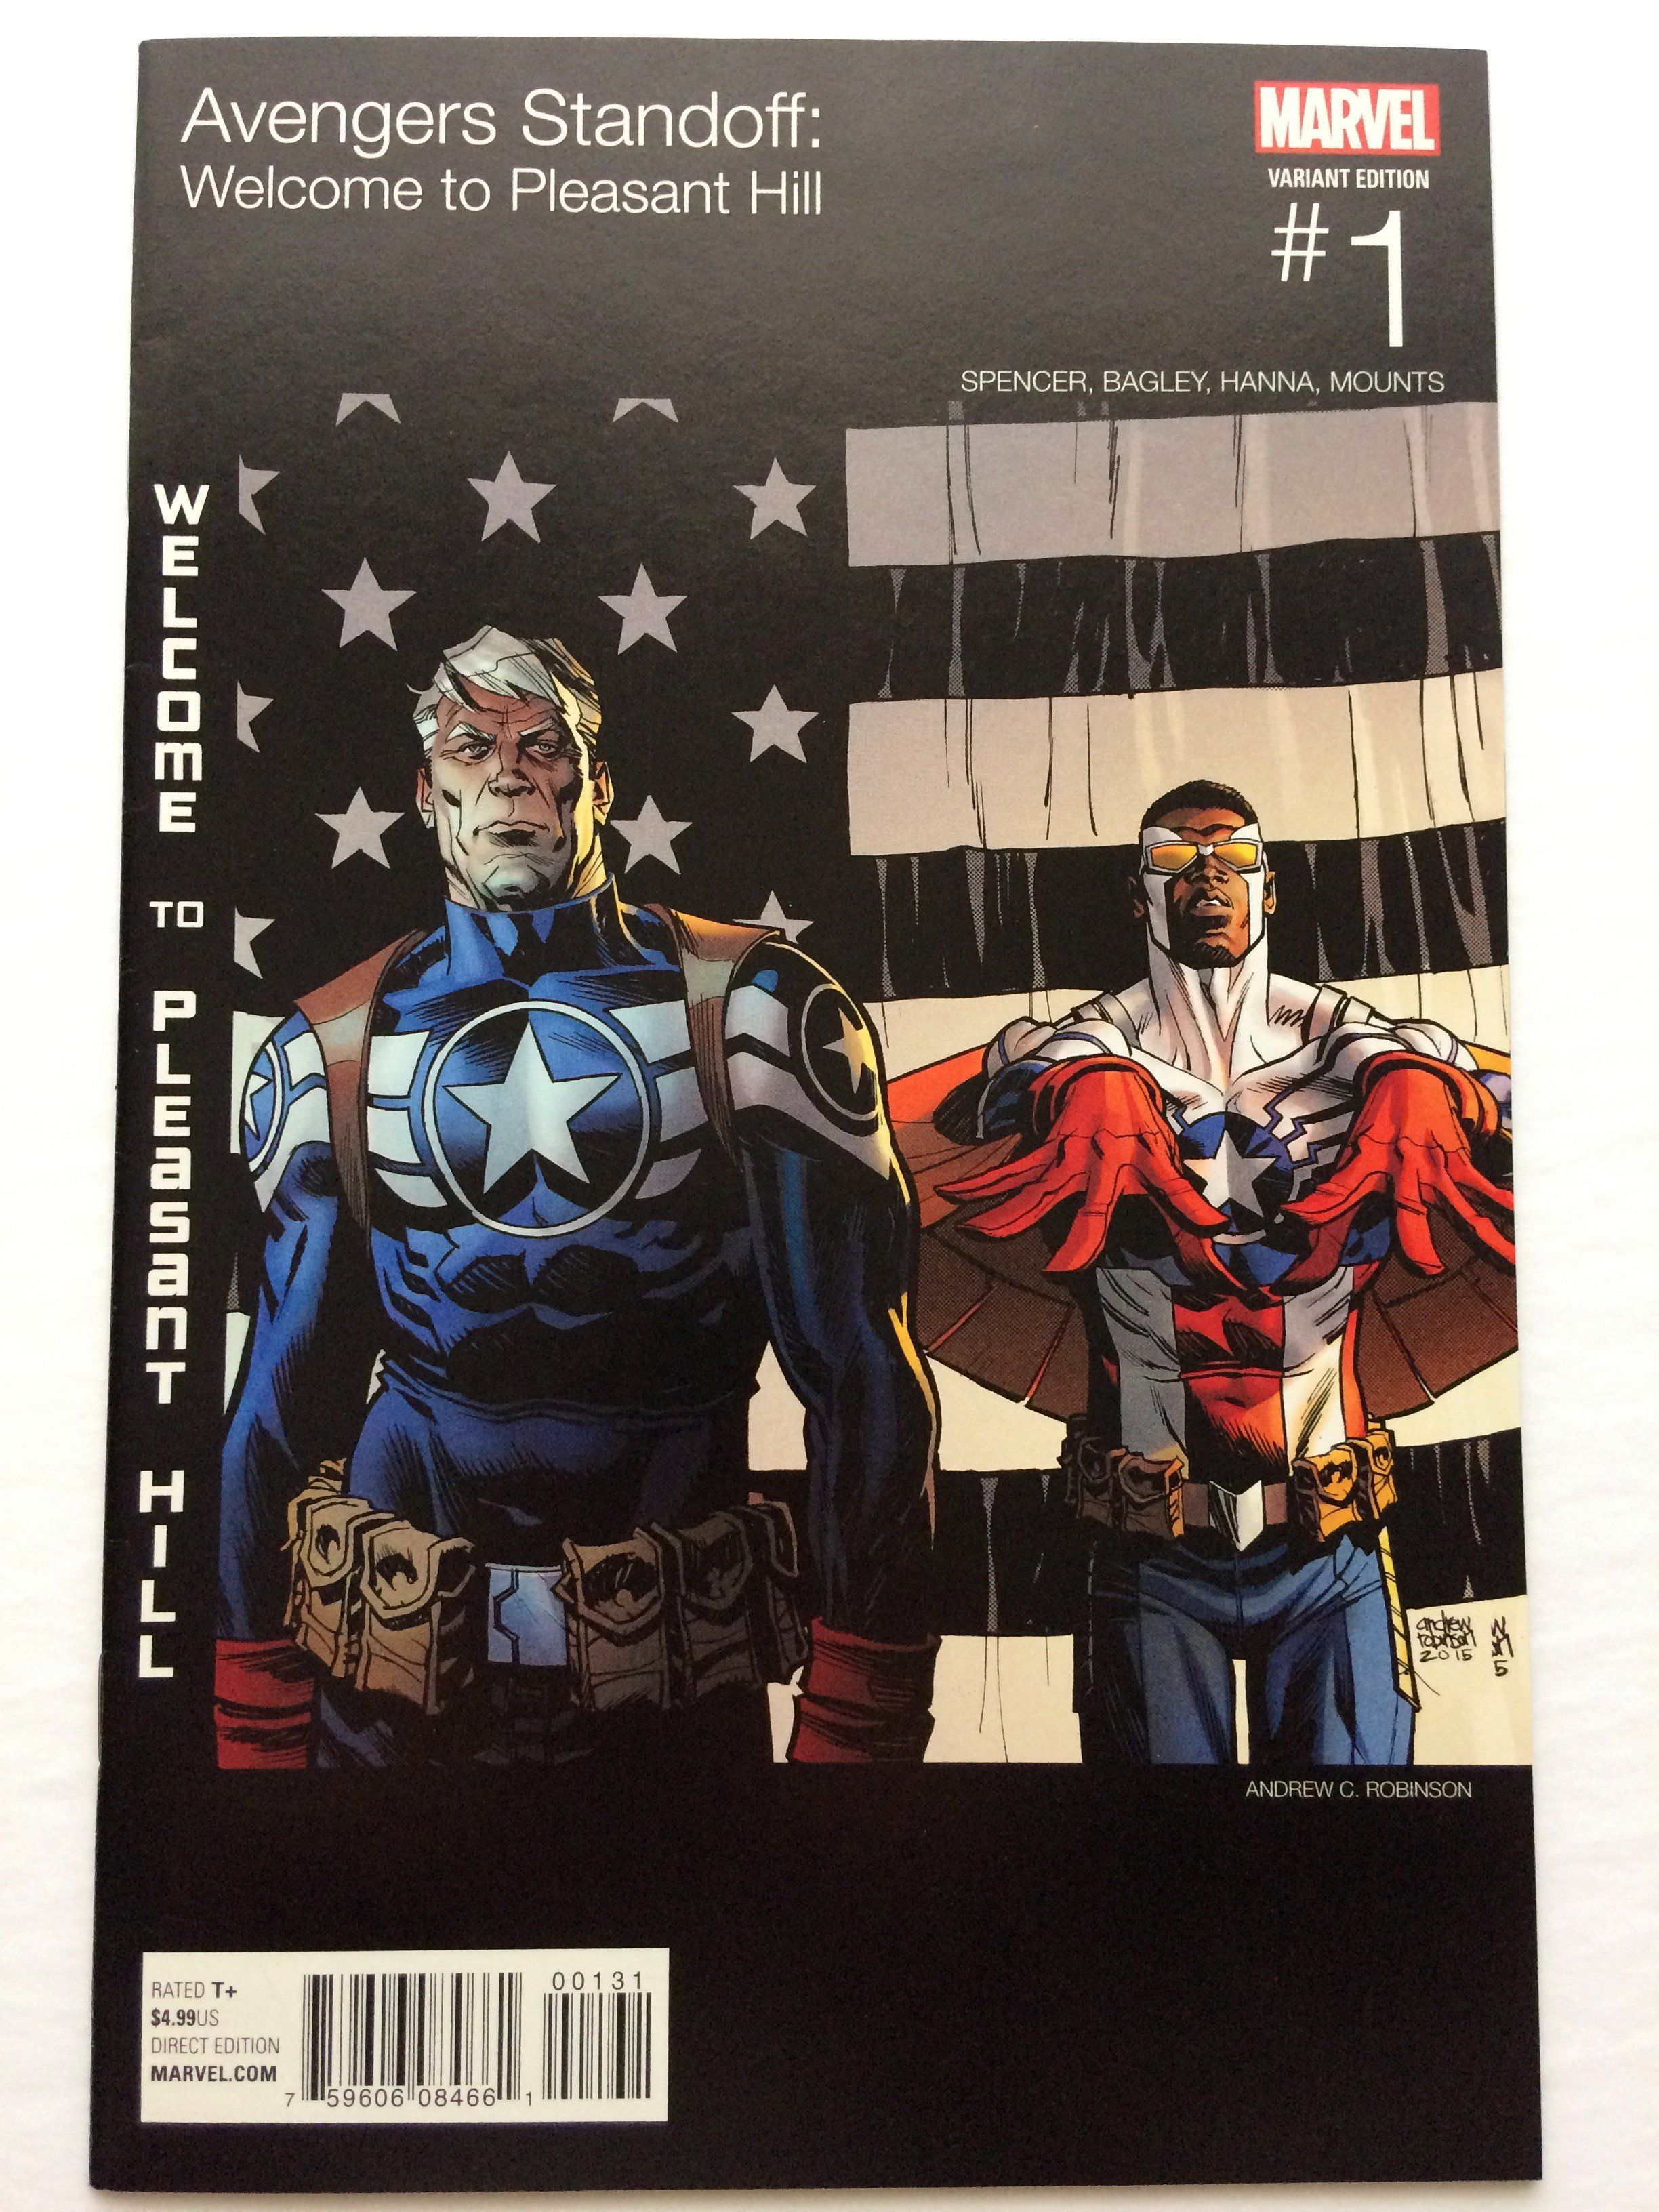 AVENGERS STANDOFF WELCOME TO PLEASANT HILL 1 HIP HOP VARIANT NM